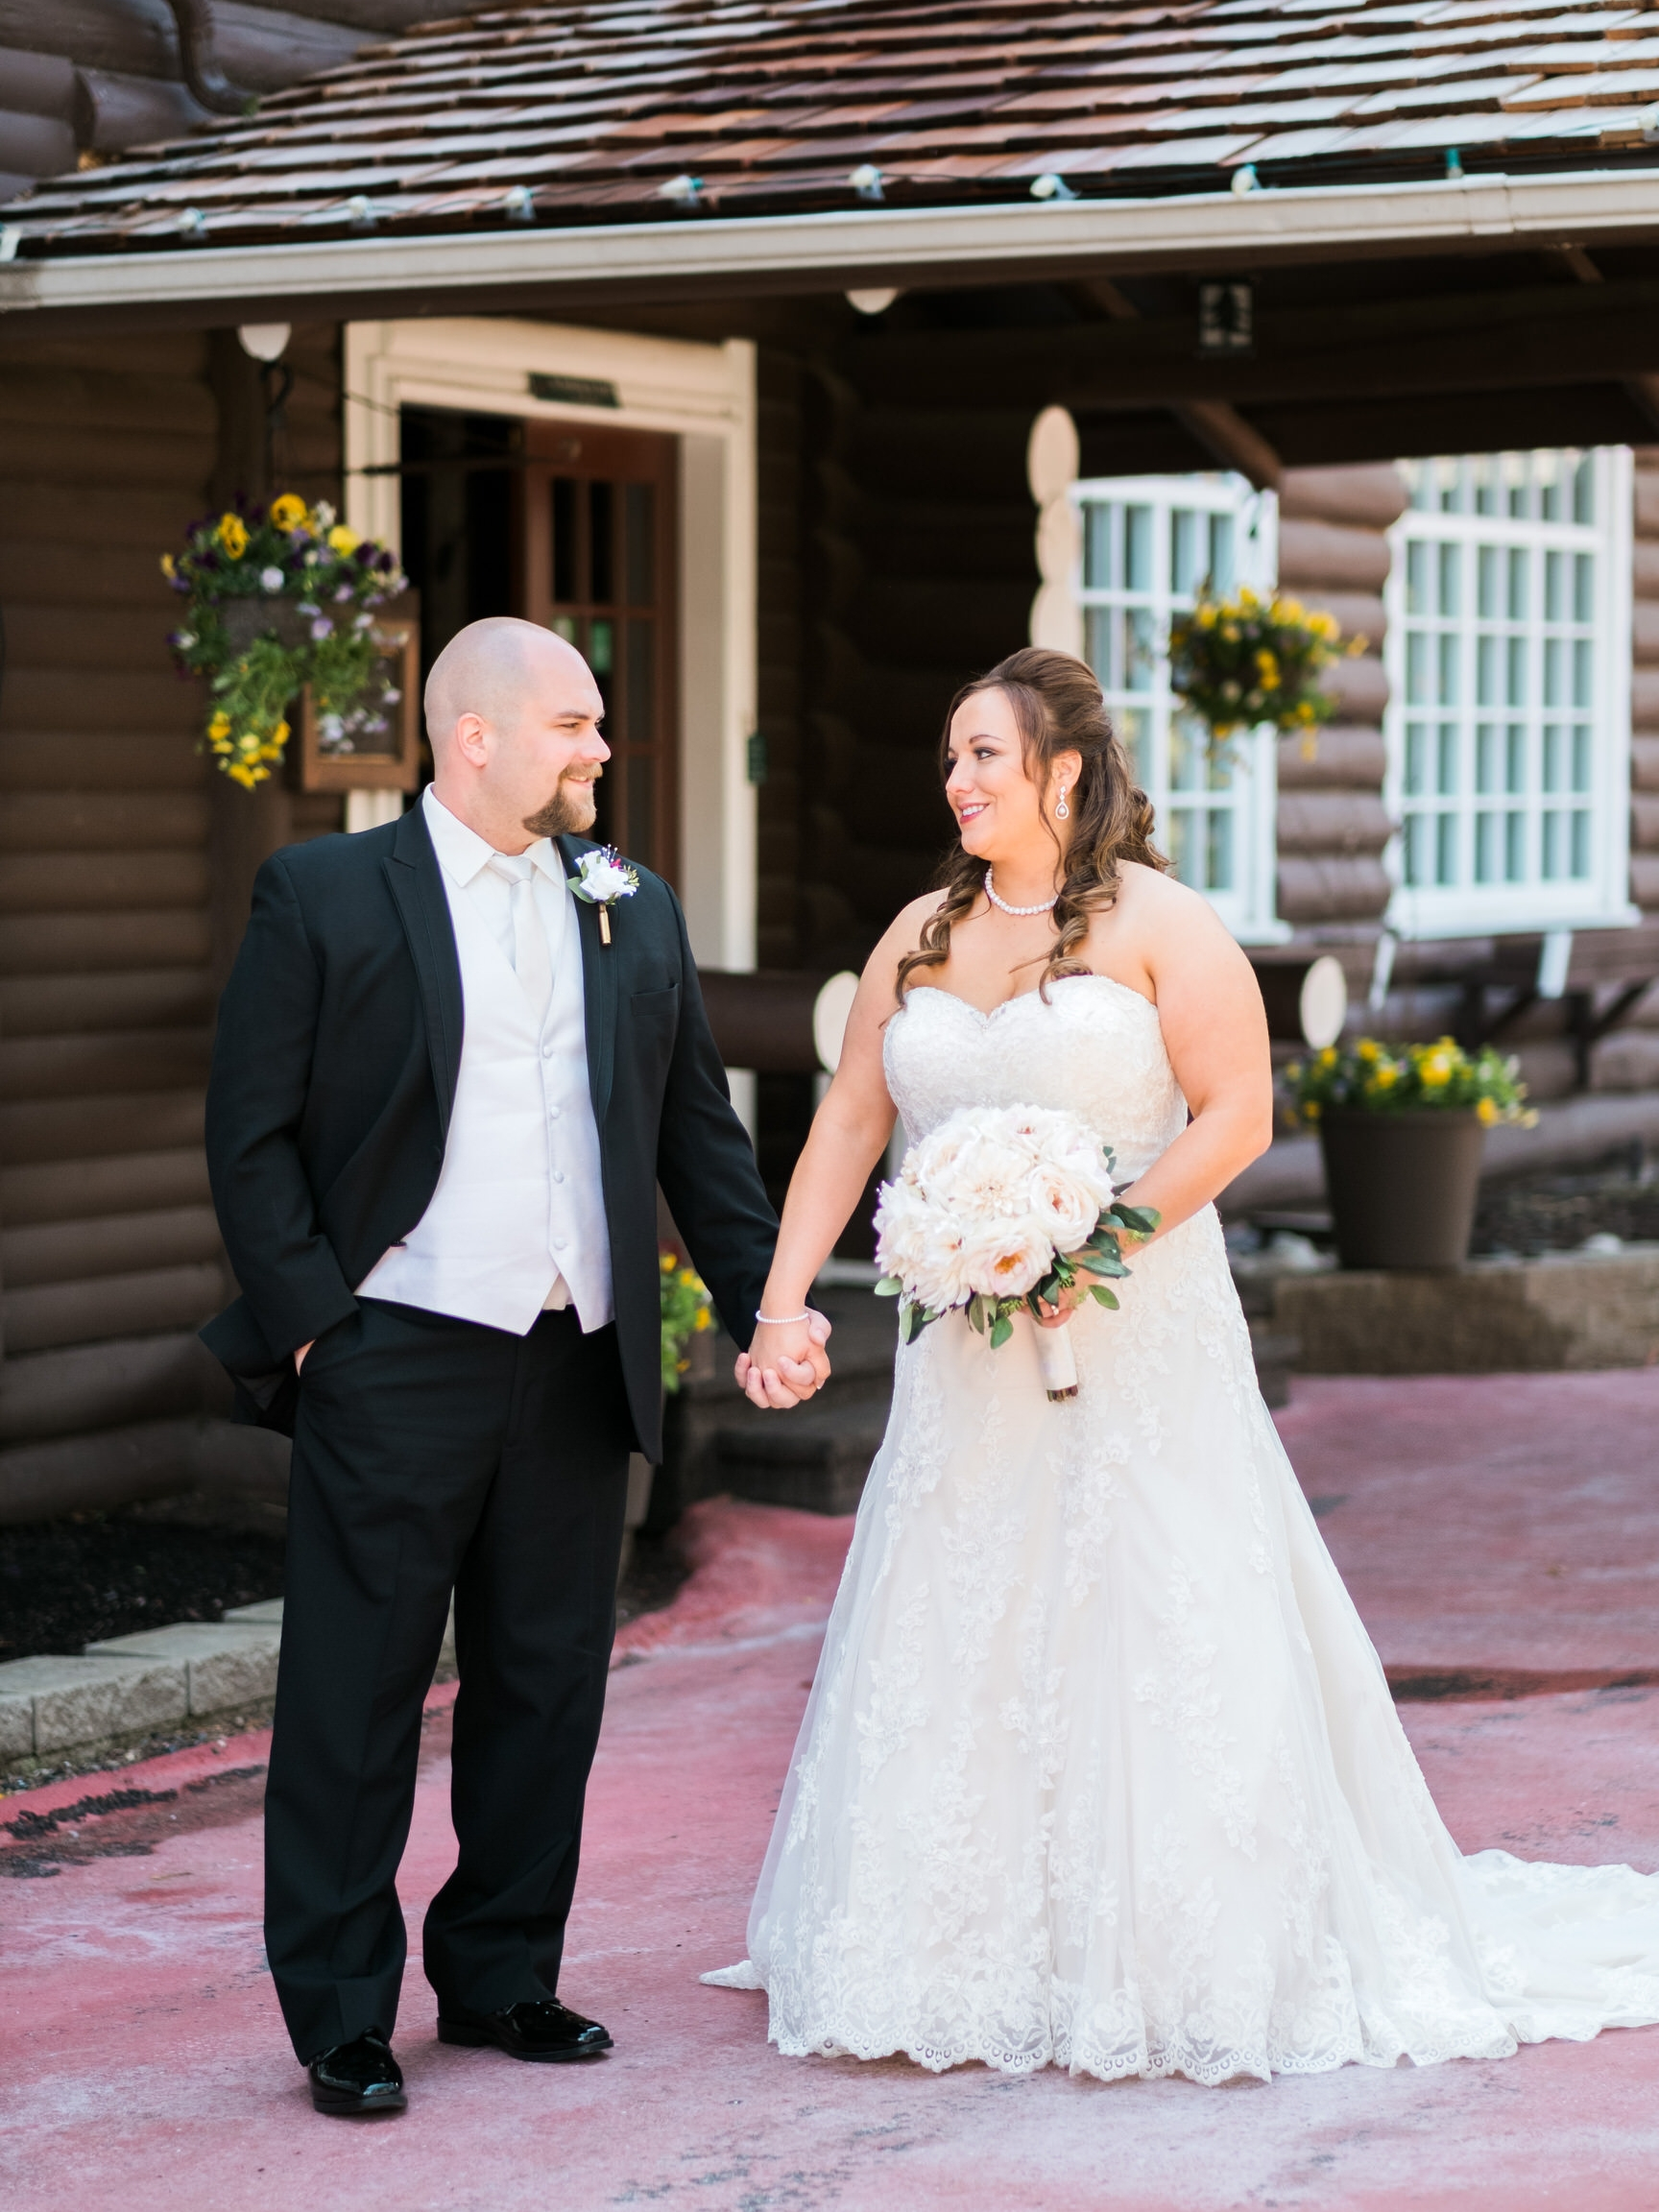 Minnesota classic lakeside wedding at Grand View Lodge